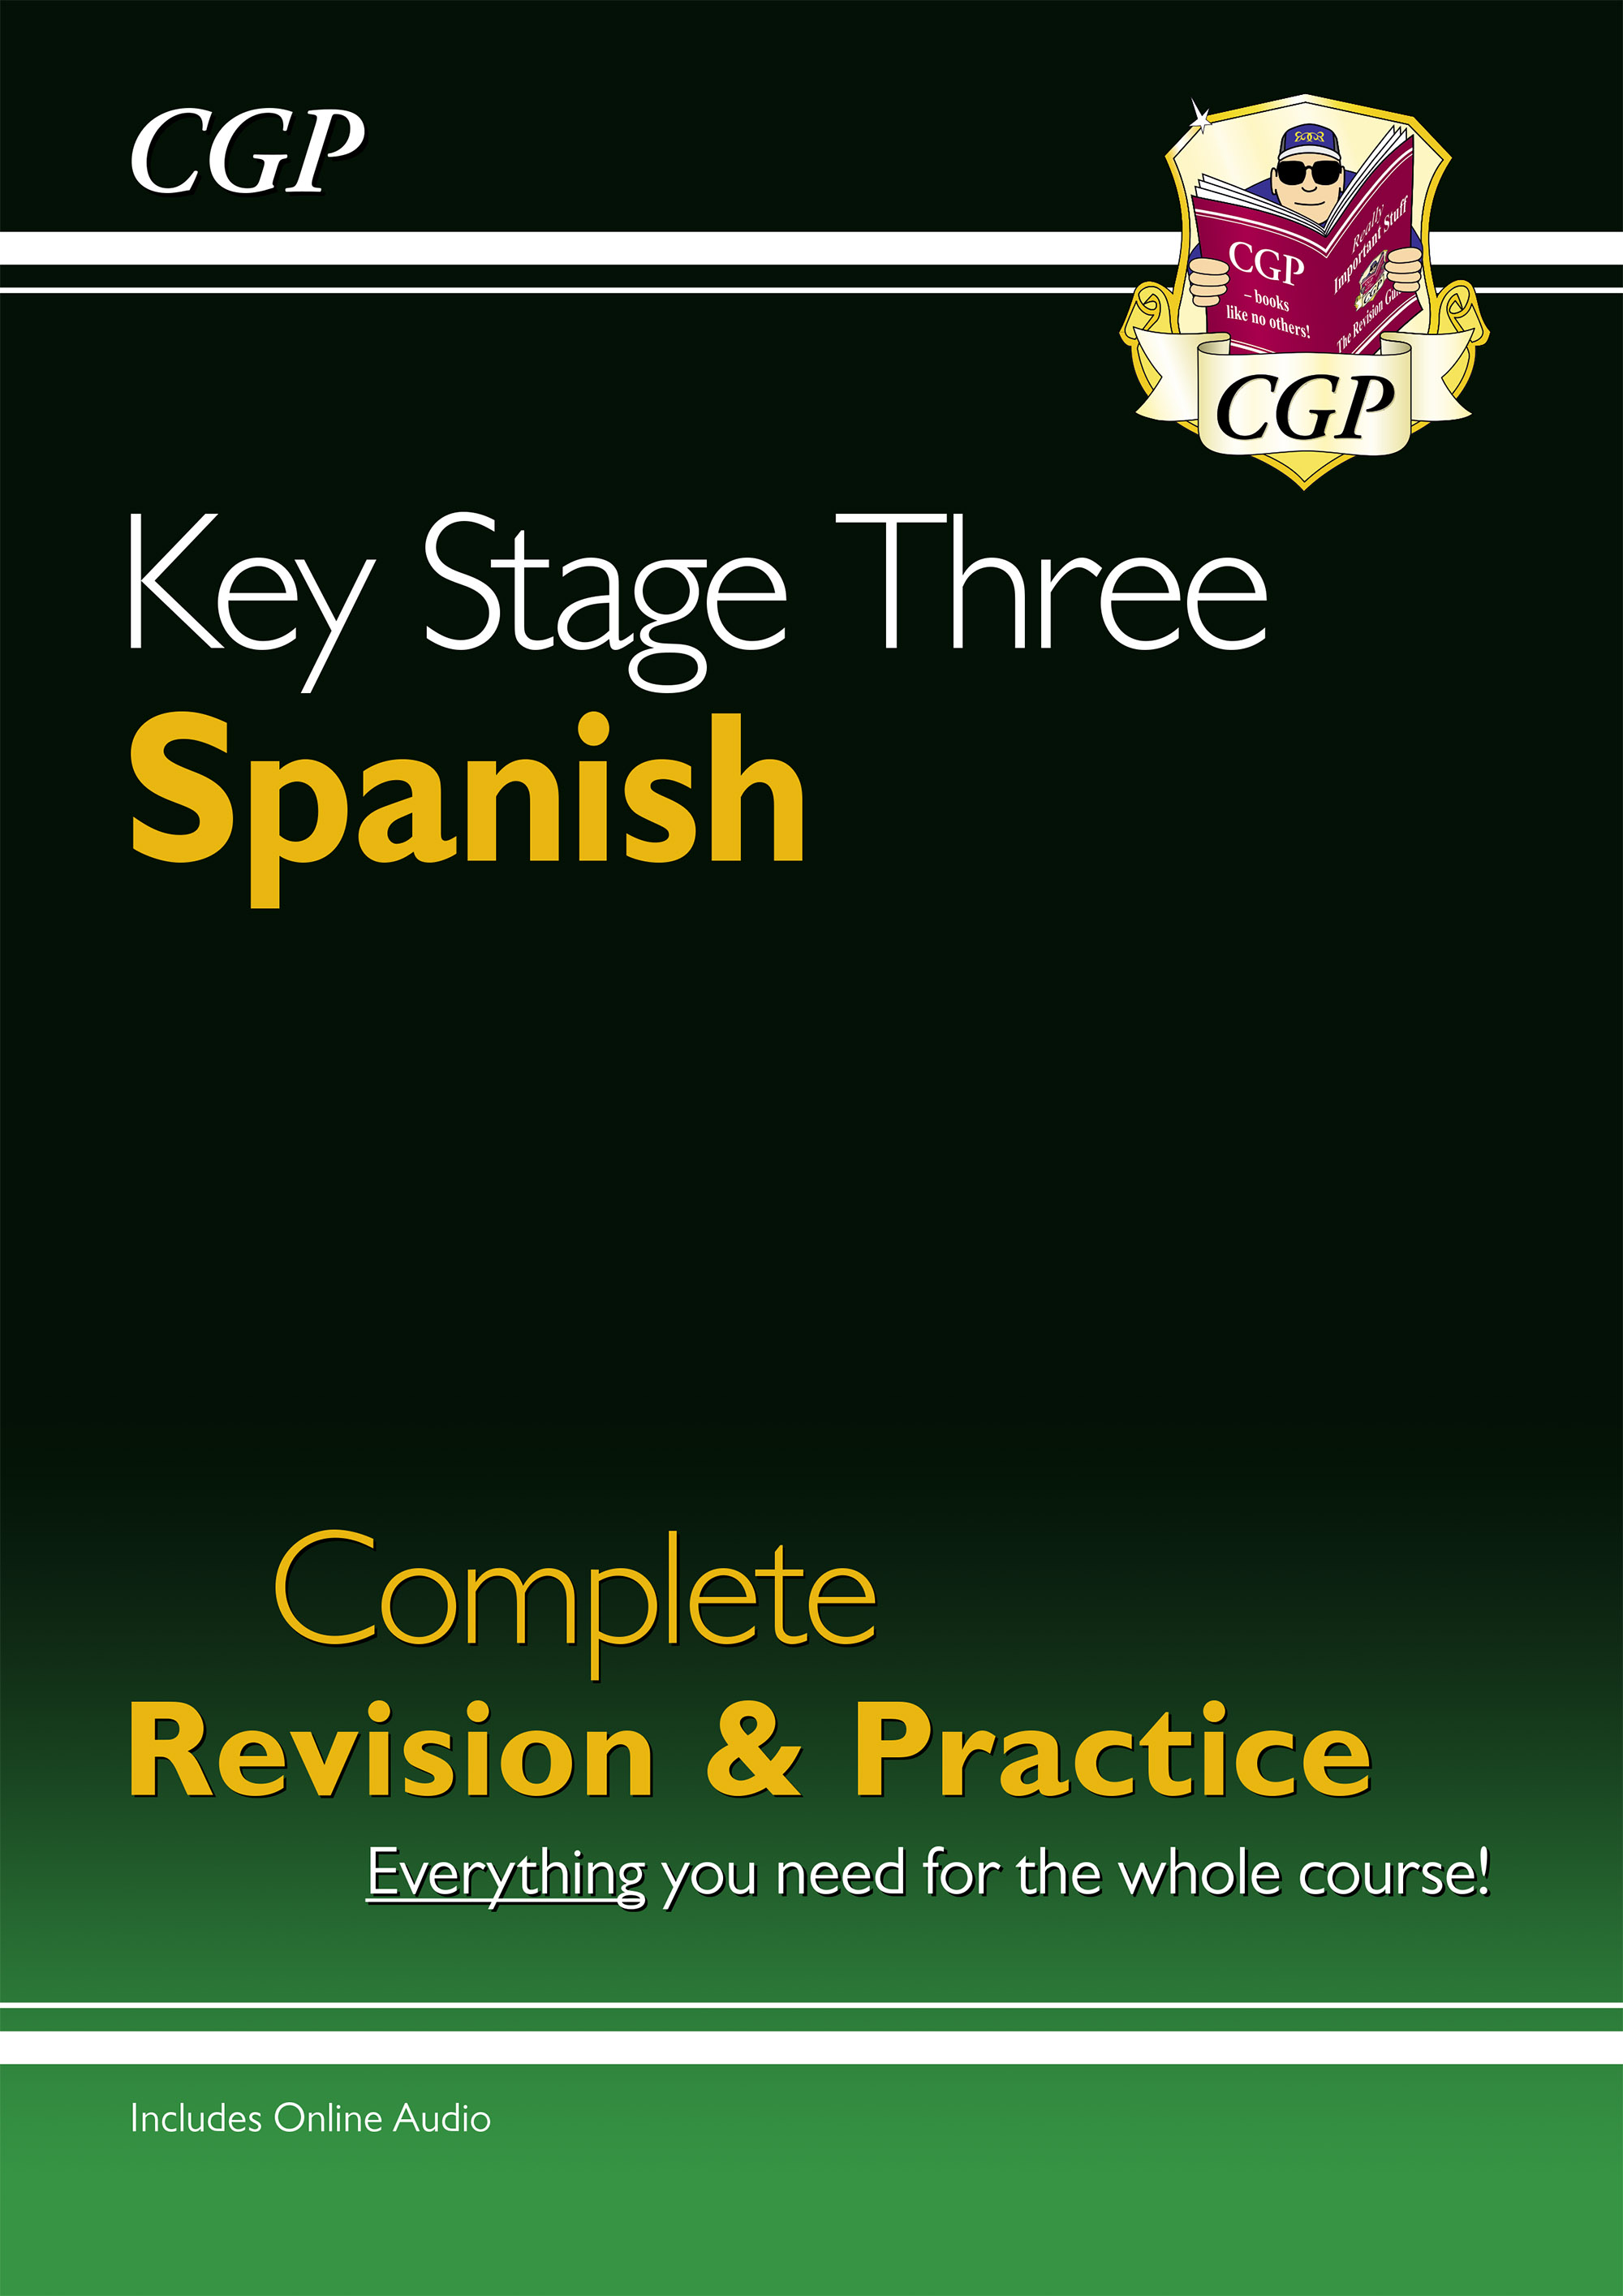 SPHS32DK - New KS3 Spanish Complete Revision & Practice with Free Online Audio